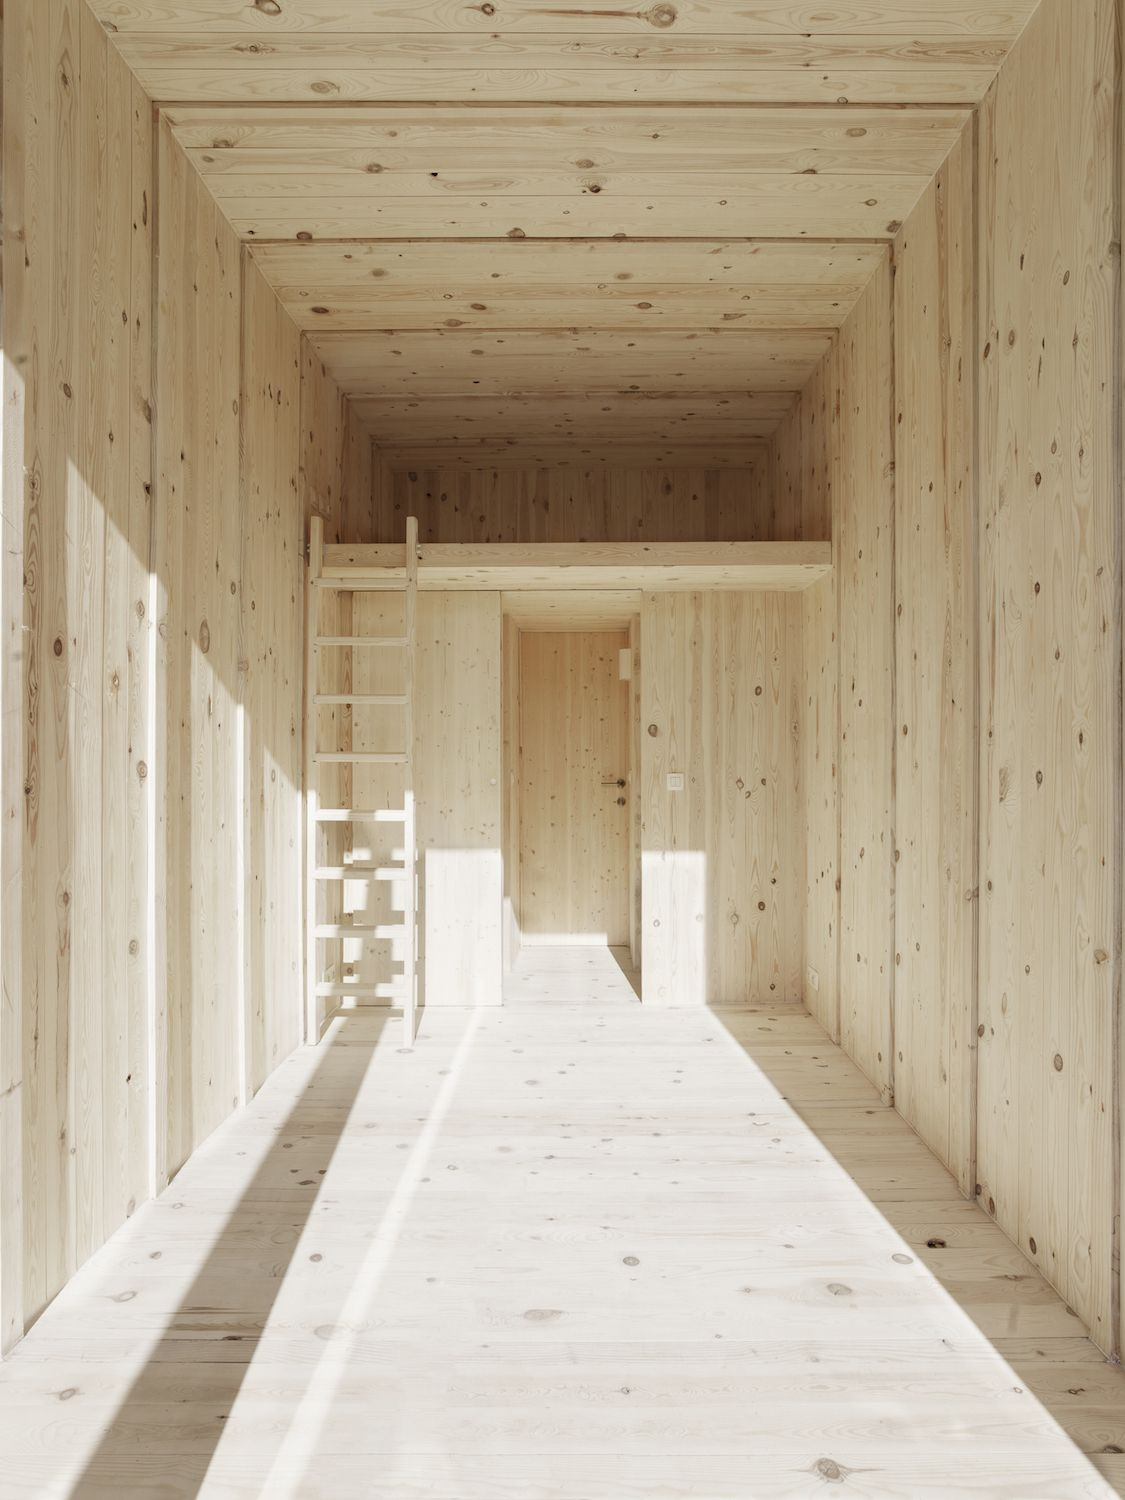 Interior of home clad in white oiled pined.